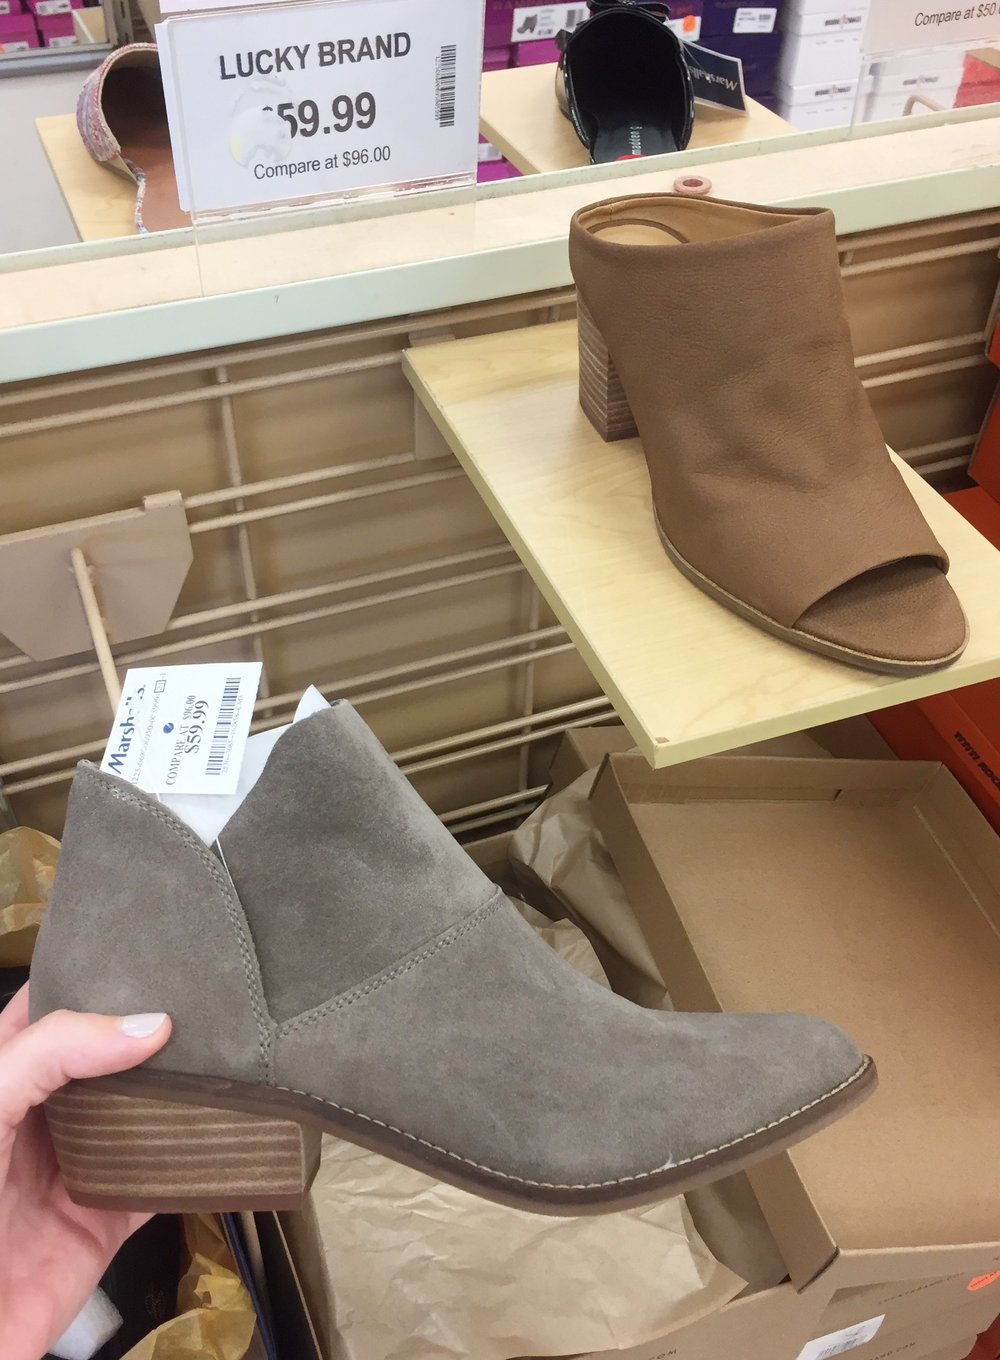 I saw those Lucky Brand mules in the background and couldn't believe my eyes. Those are basically the same shoes I've been wearing nonstop.   Click here   to see the limited sizes left at Nordstrom. I also saw the cute pair of Lucky Brand booties that I'm holding and wanted them too.